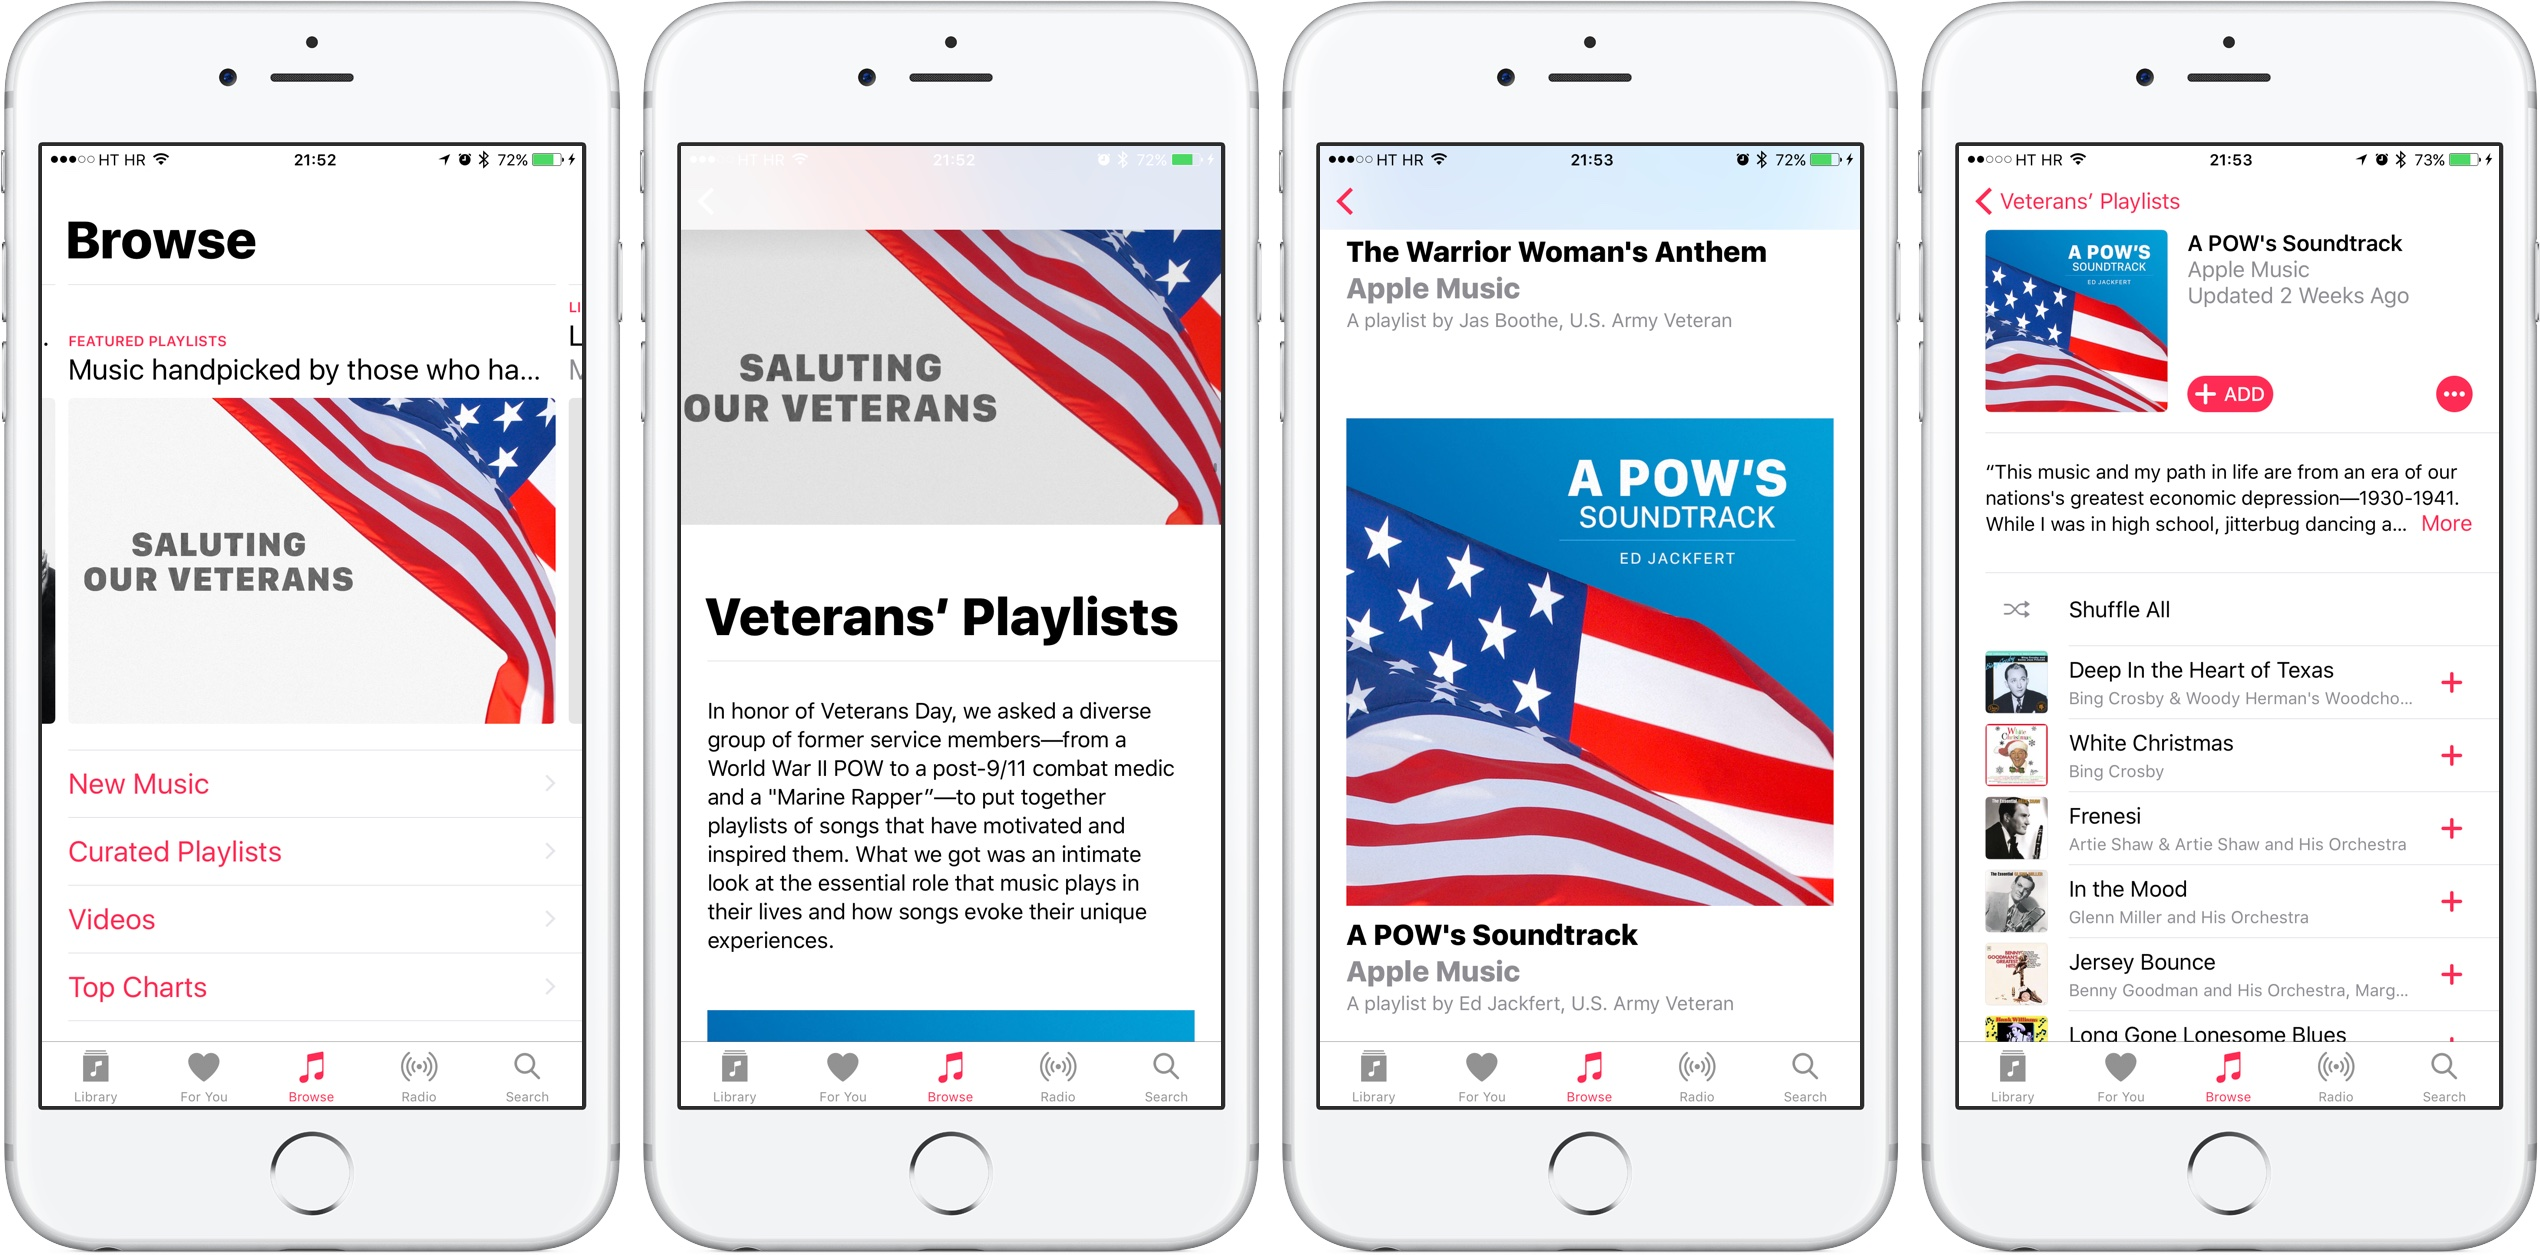 Apple Music 2016 Veterans Day section